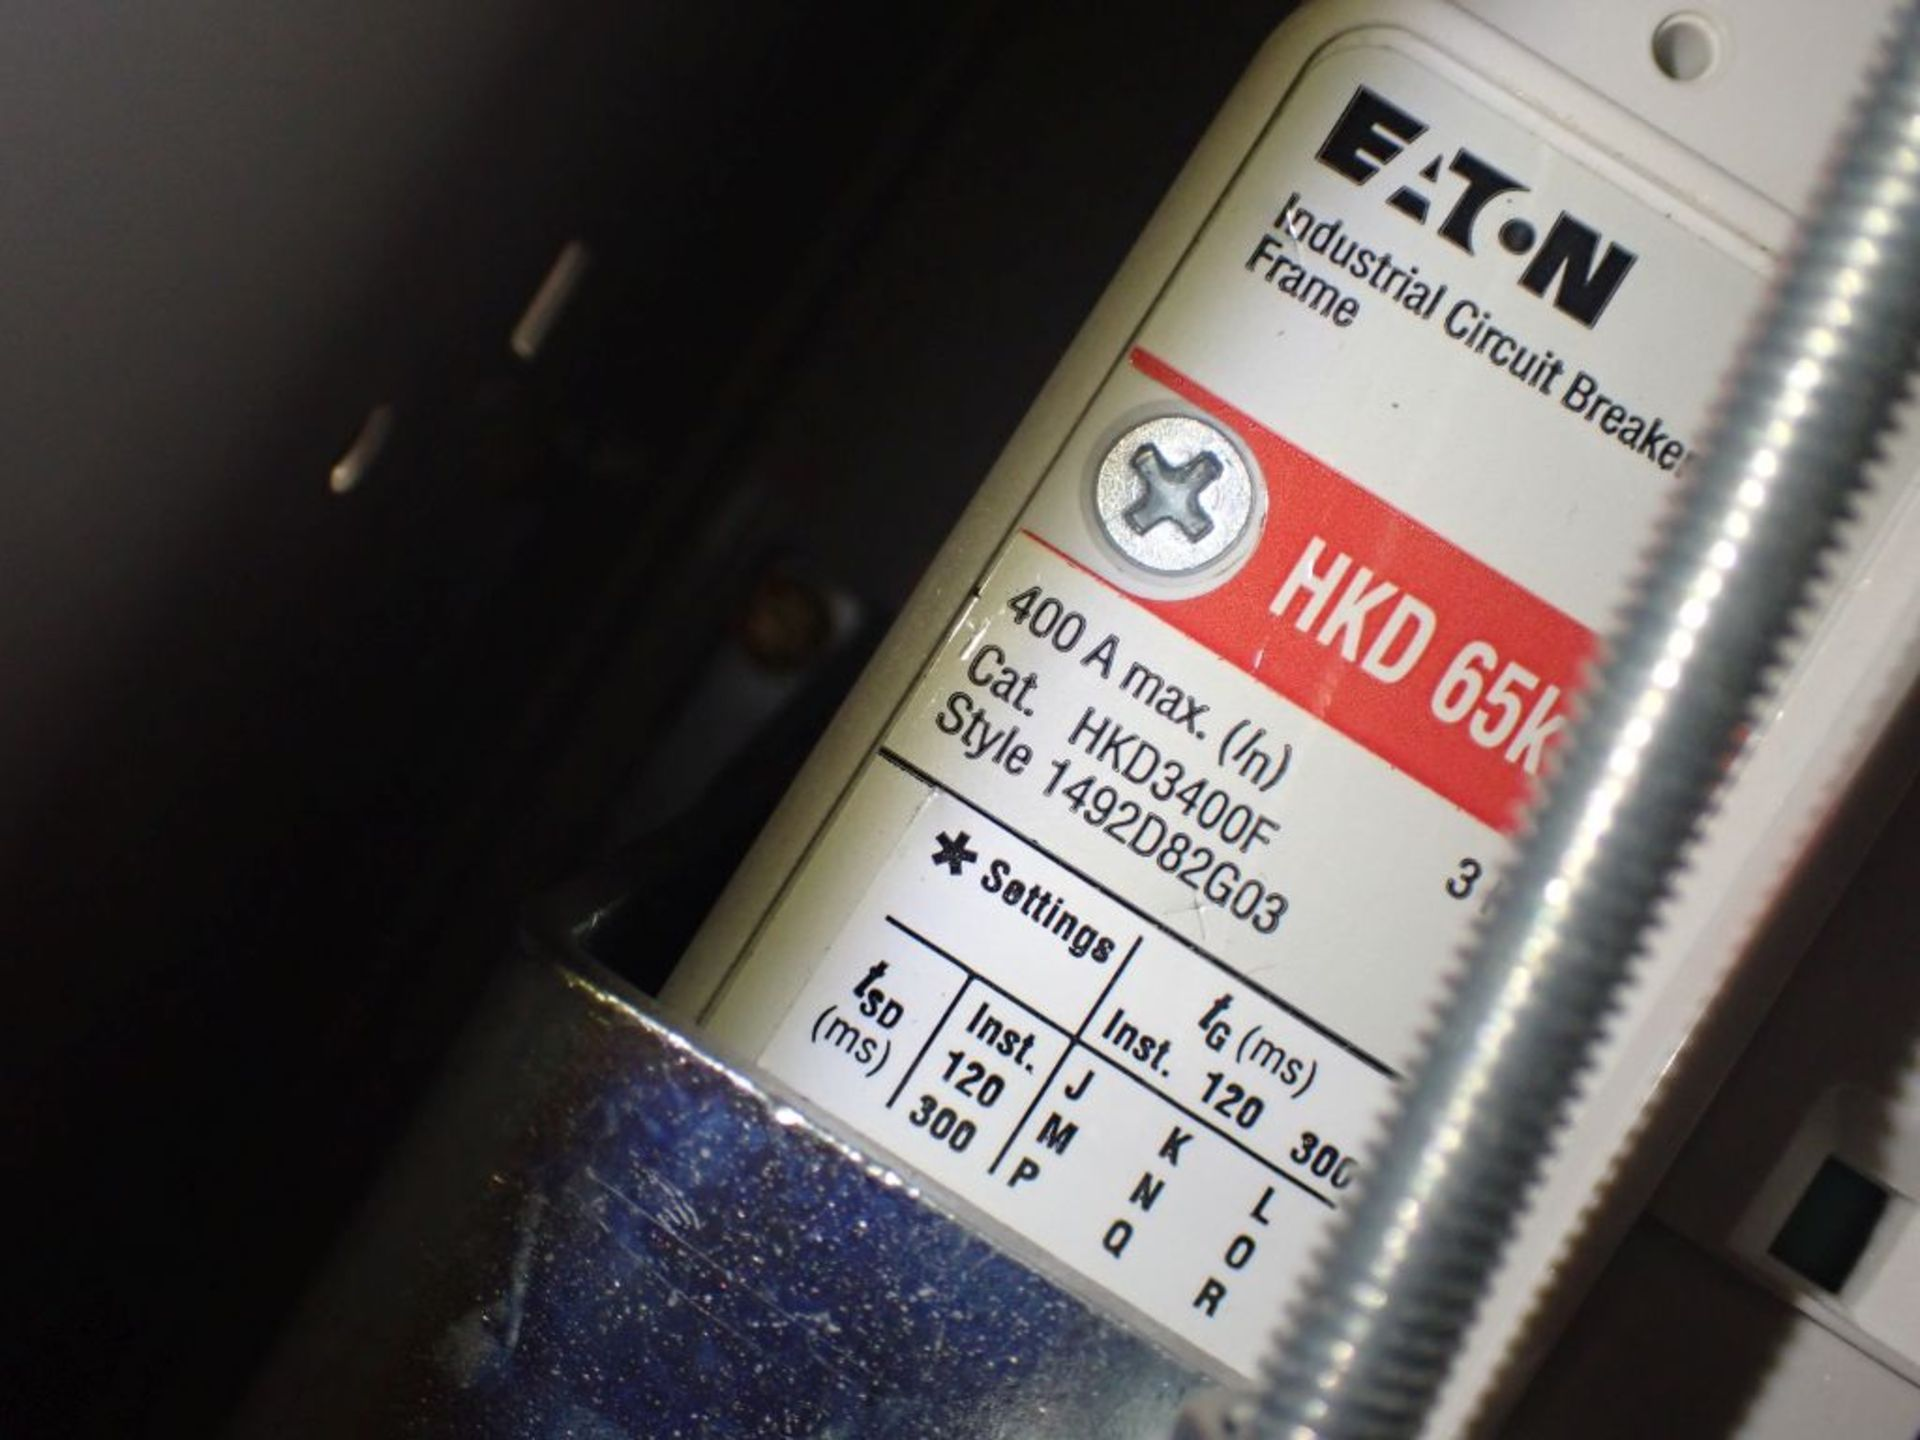 Eaton Freedom 2100 Series Motor Control Center | (2) F206-15A-10HP; (1) FDRB-250A; (1) FDRB-400A; ( - Image 57 of 104